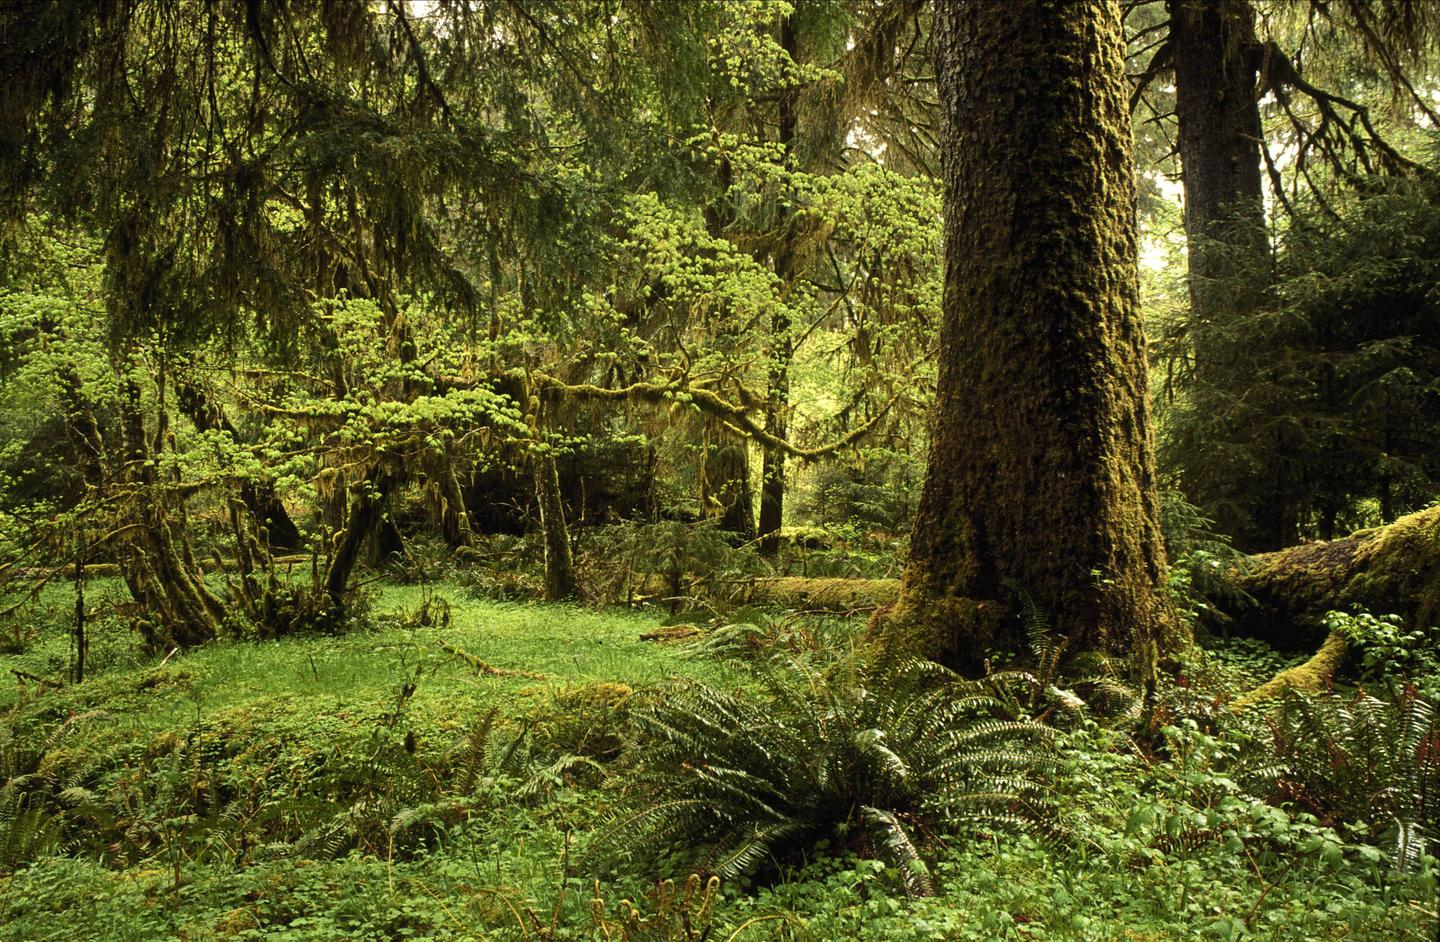 View of temperate rain forest with large spruce tree.Temperate Rain Forest